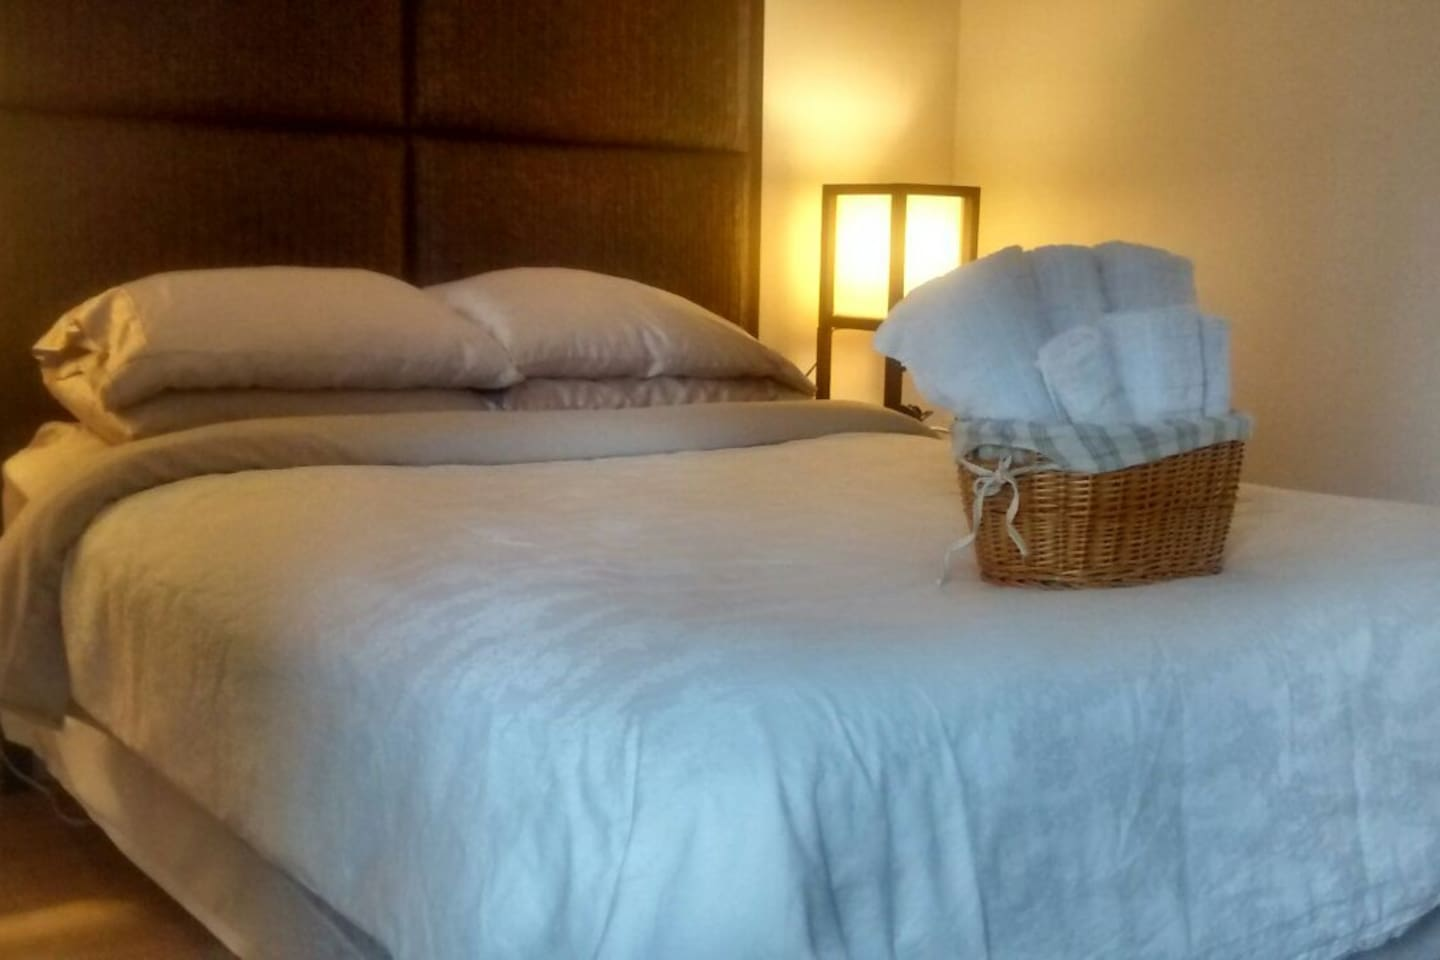 All linen is kept up to date and fresh for each and every guest.